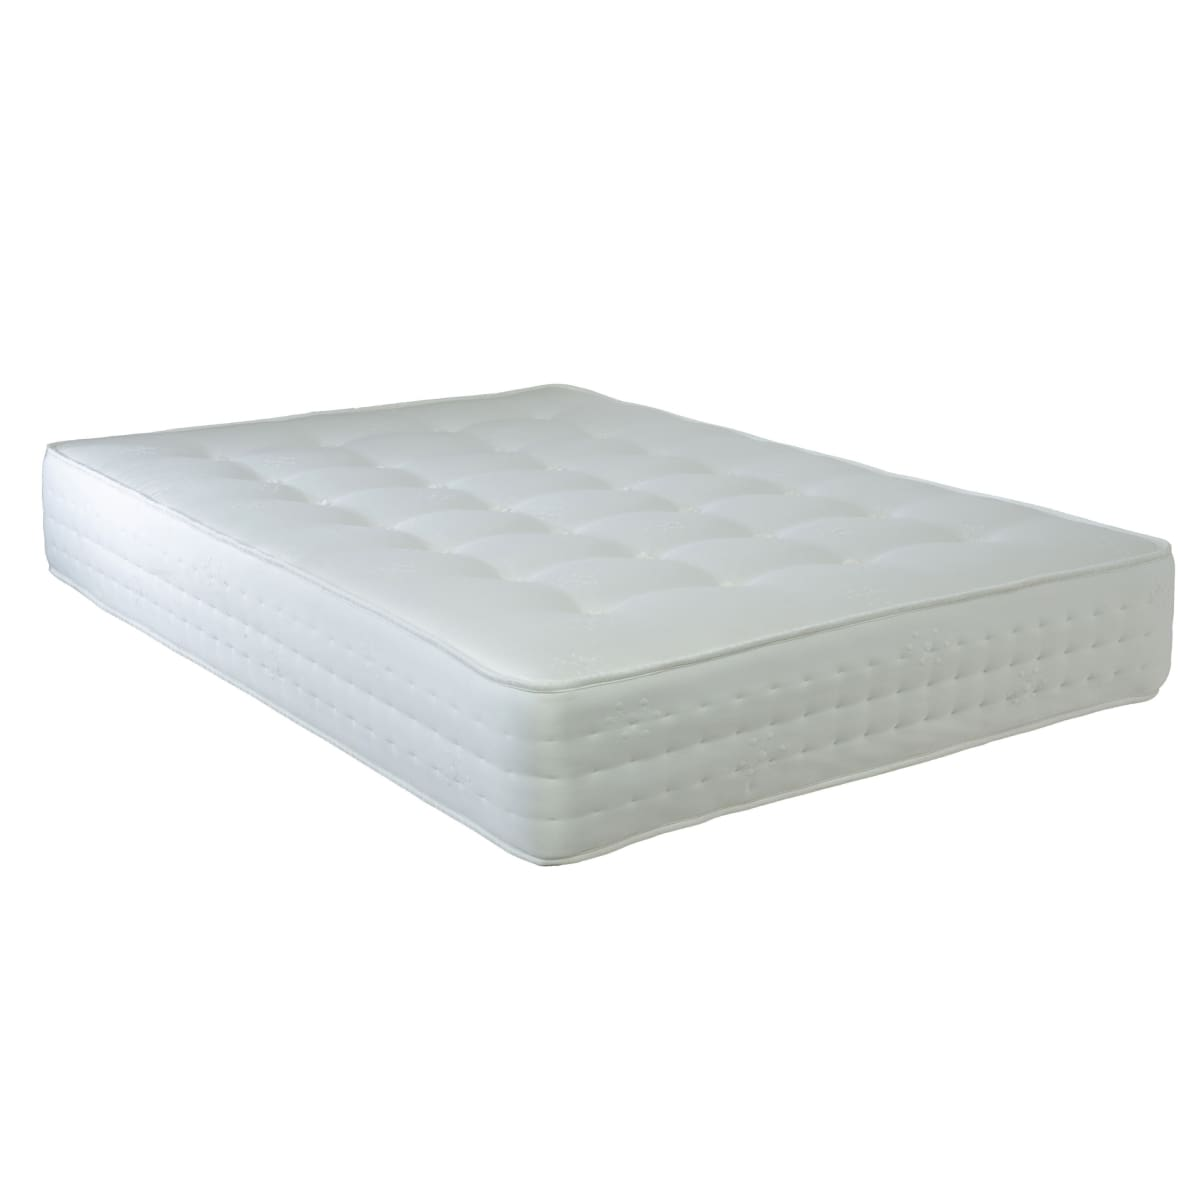 Gillmore Space Pipe Essentials Double Pocket Sprung Mattress